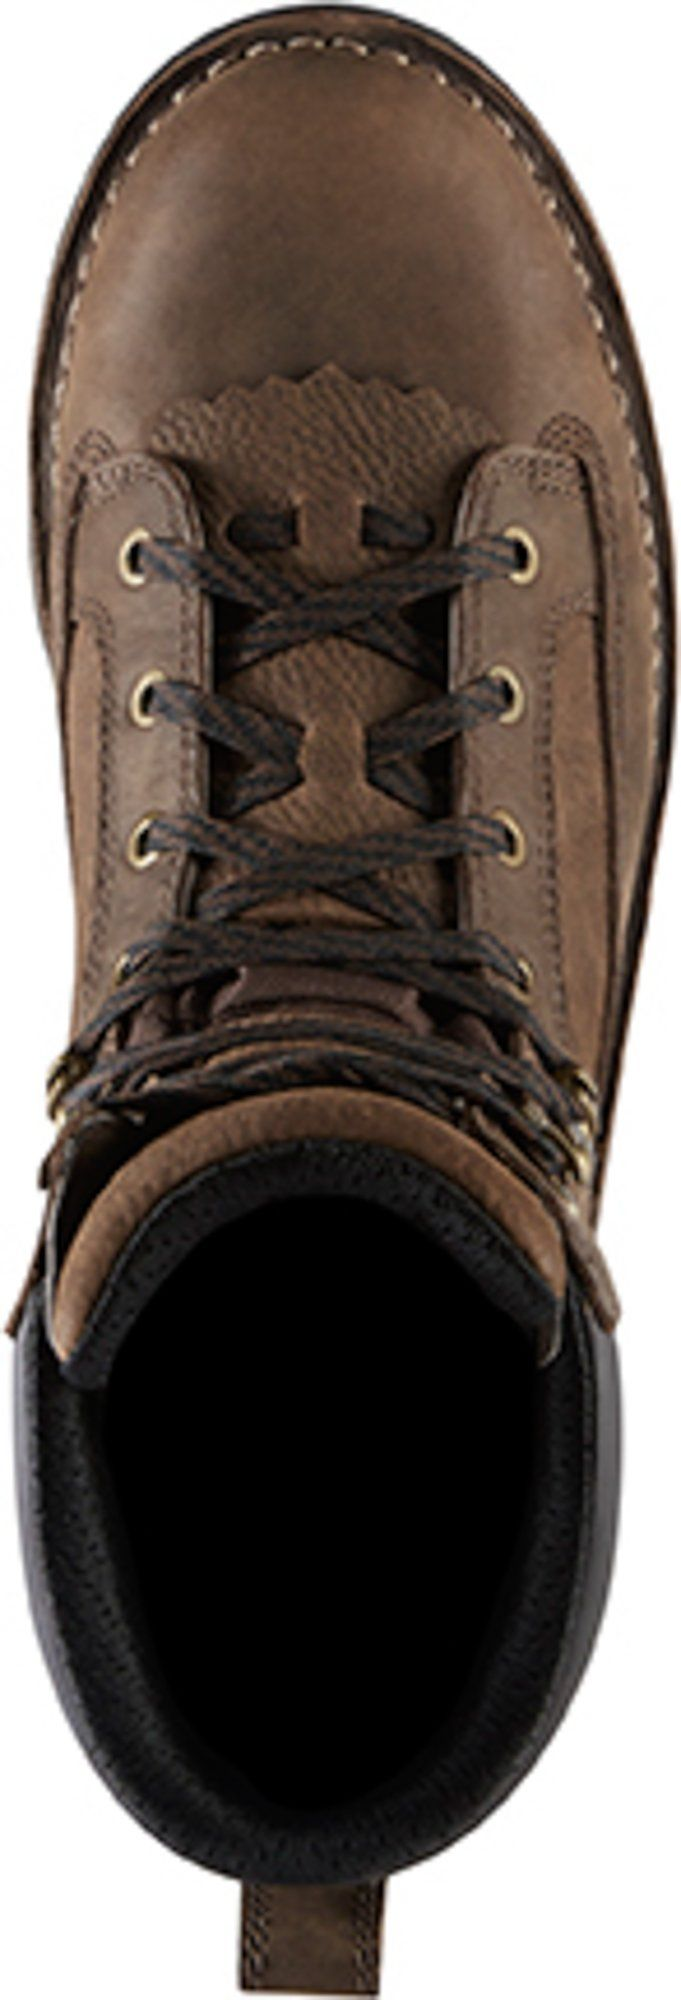 Danner Powderhorn 10in Mens Brown Leather GTX Hunting Boots